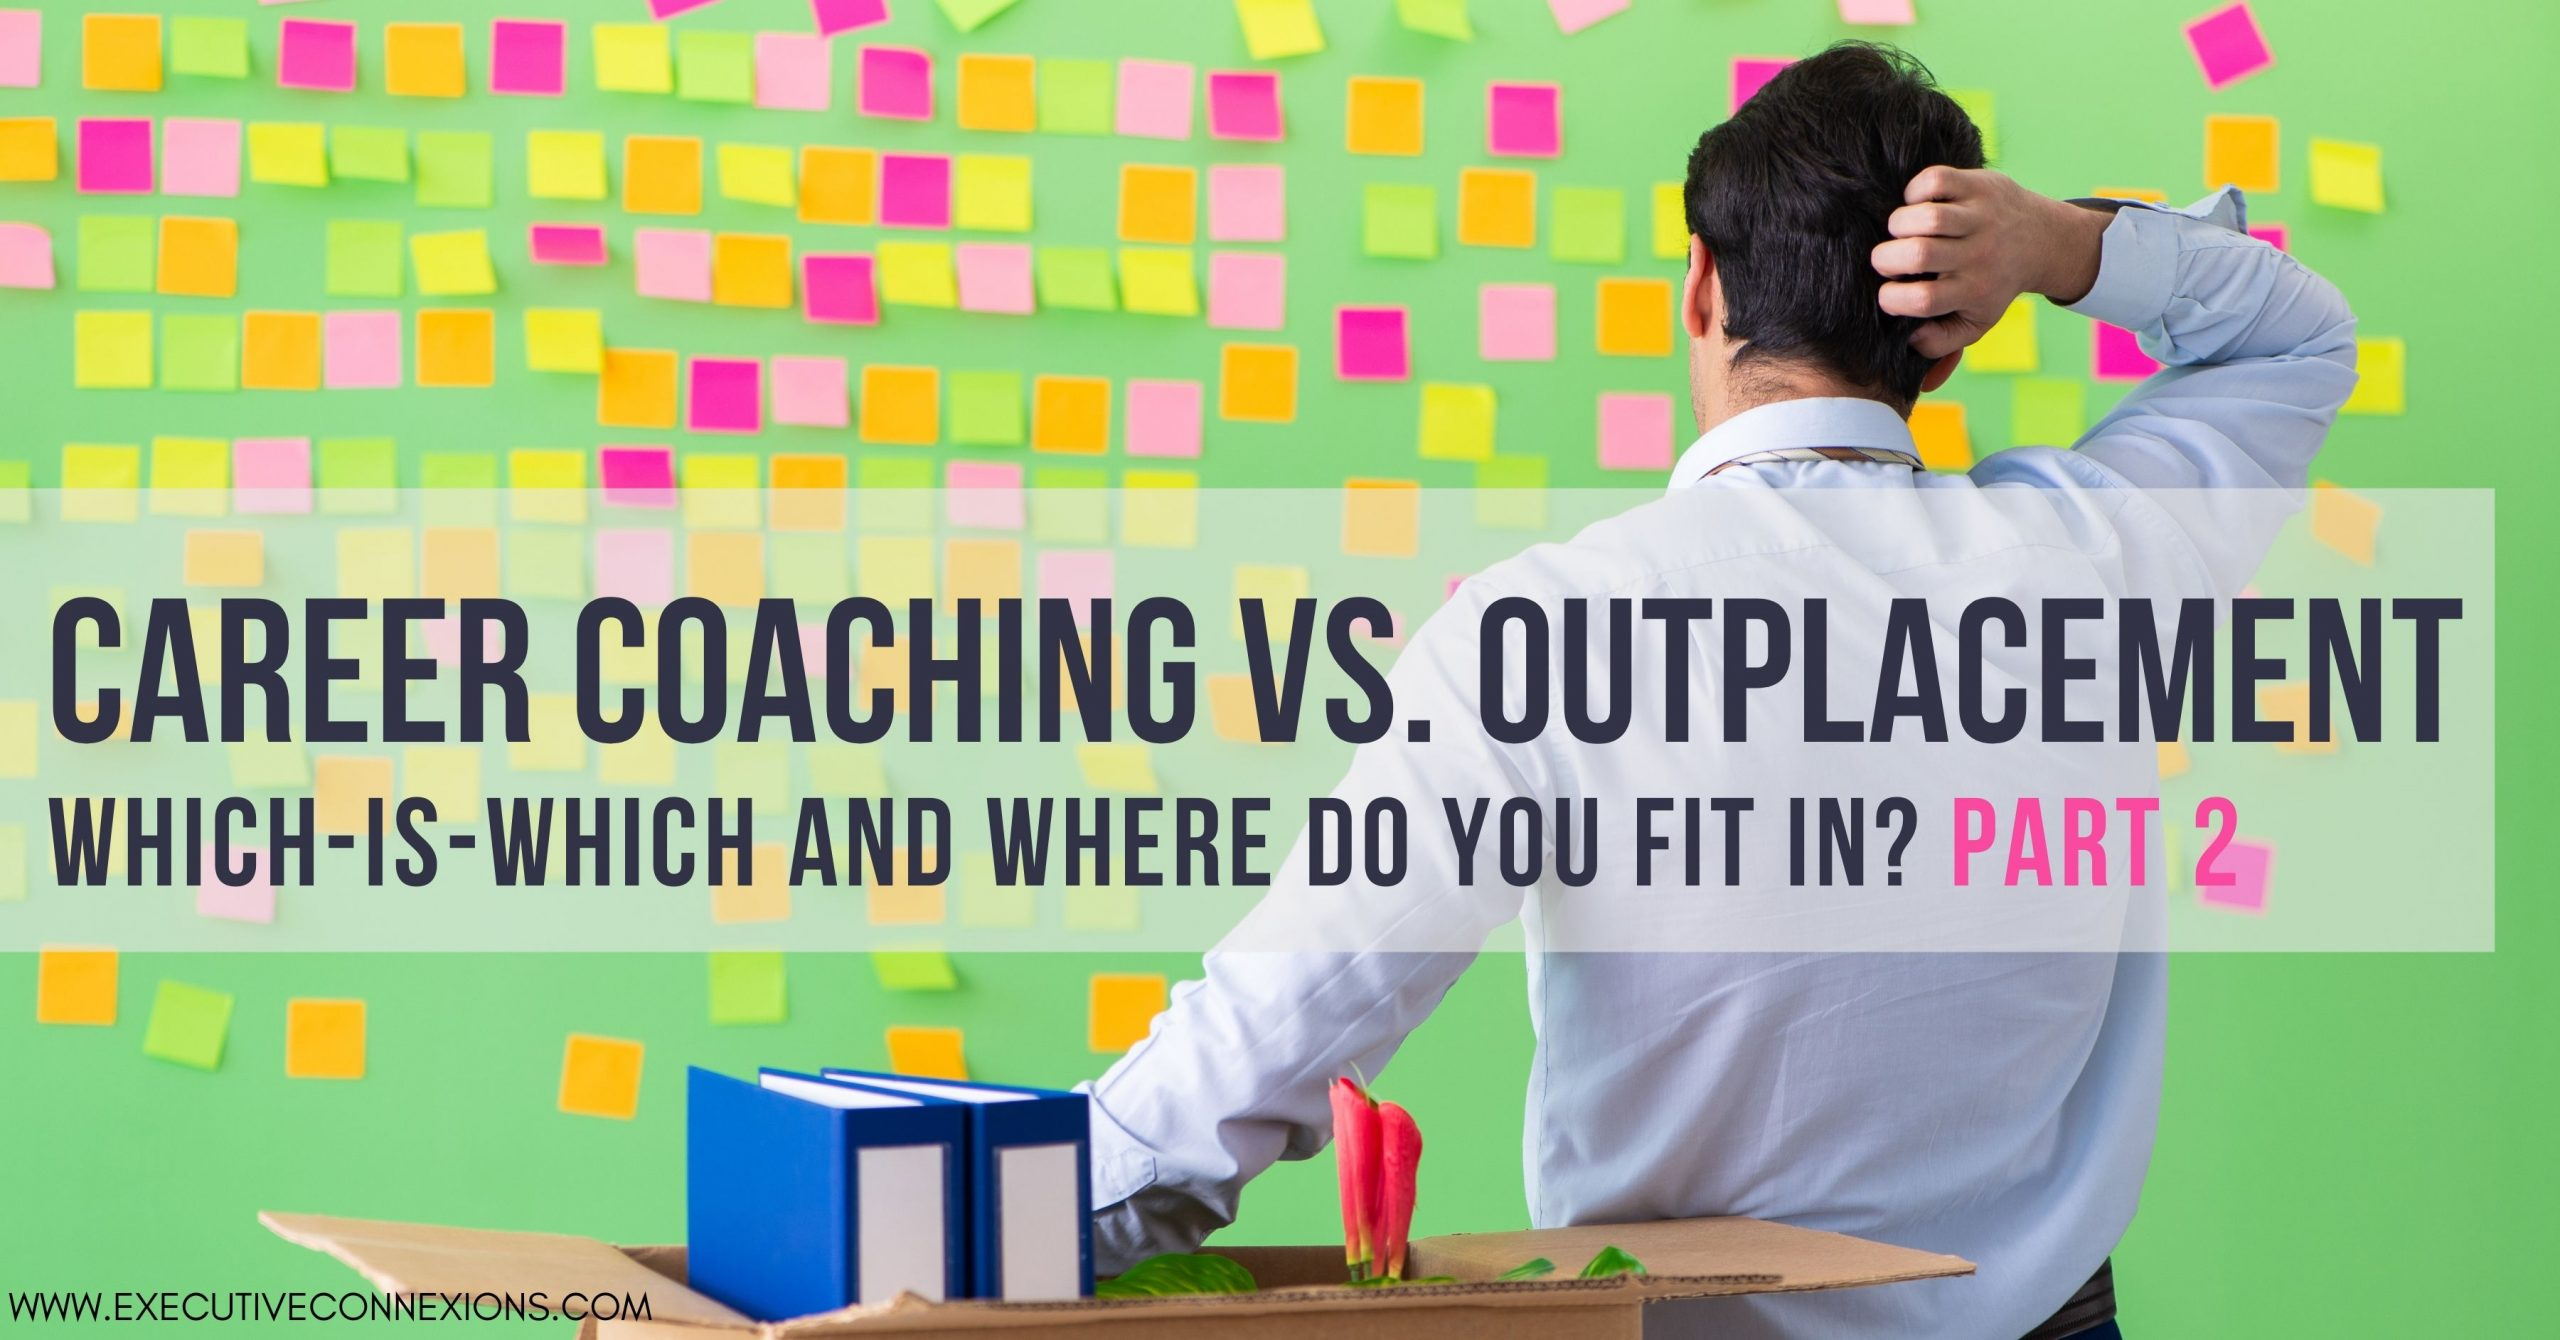 Career Coaching vs. Outplacement Services: which-is-which and where do you fit in? Part 2.